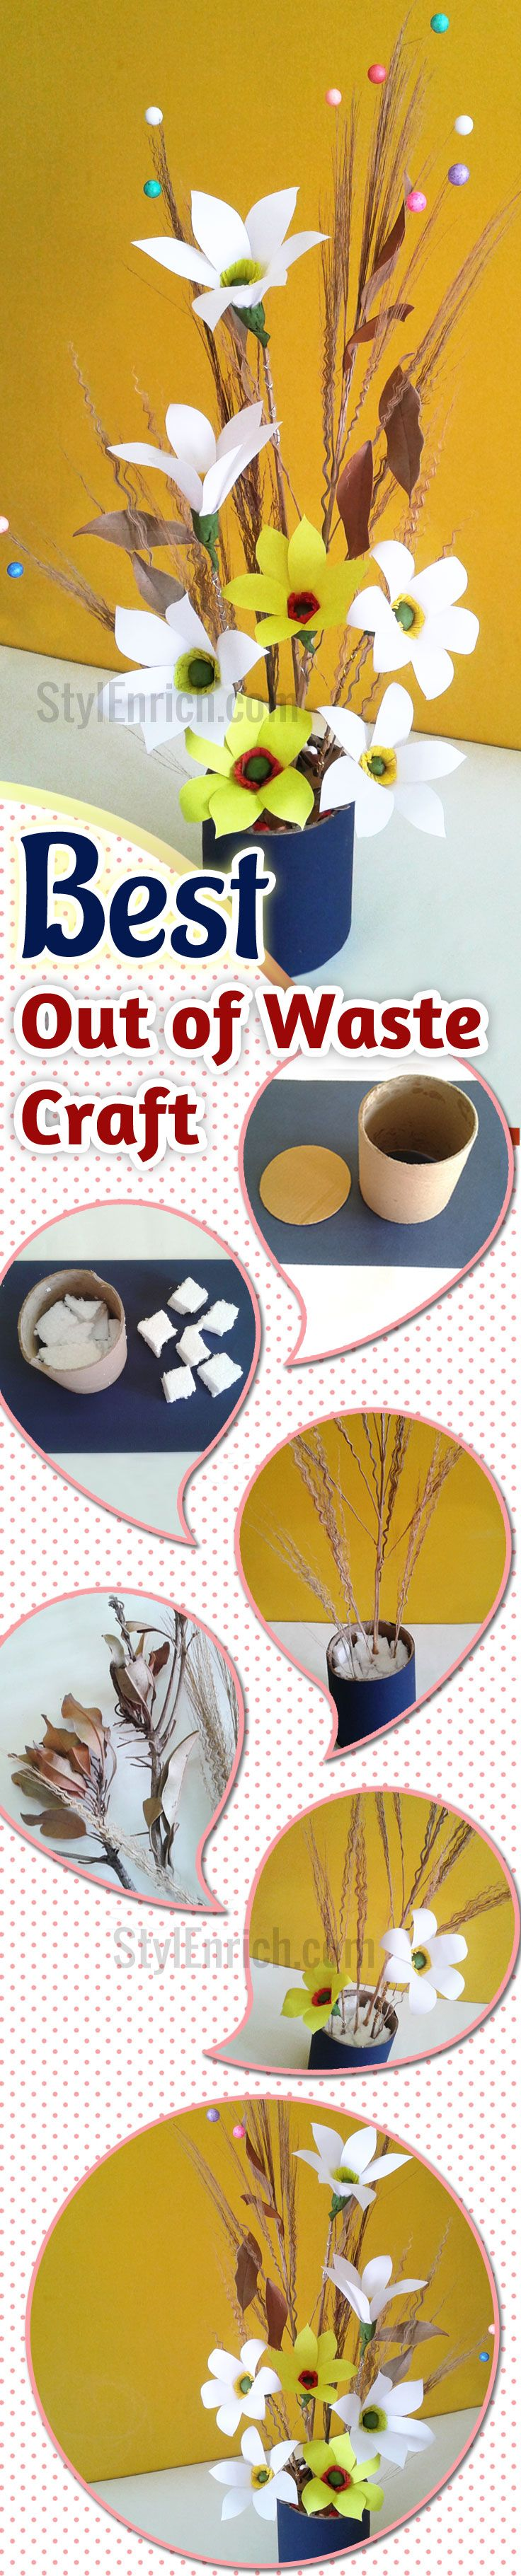 49 best images about best out of waste on pinterest for Best out of waste with paper